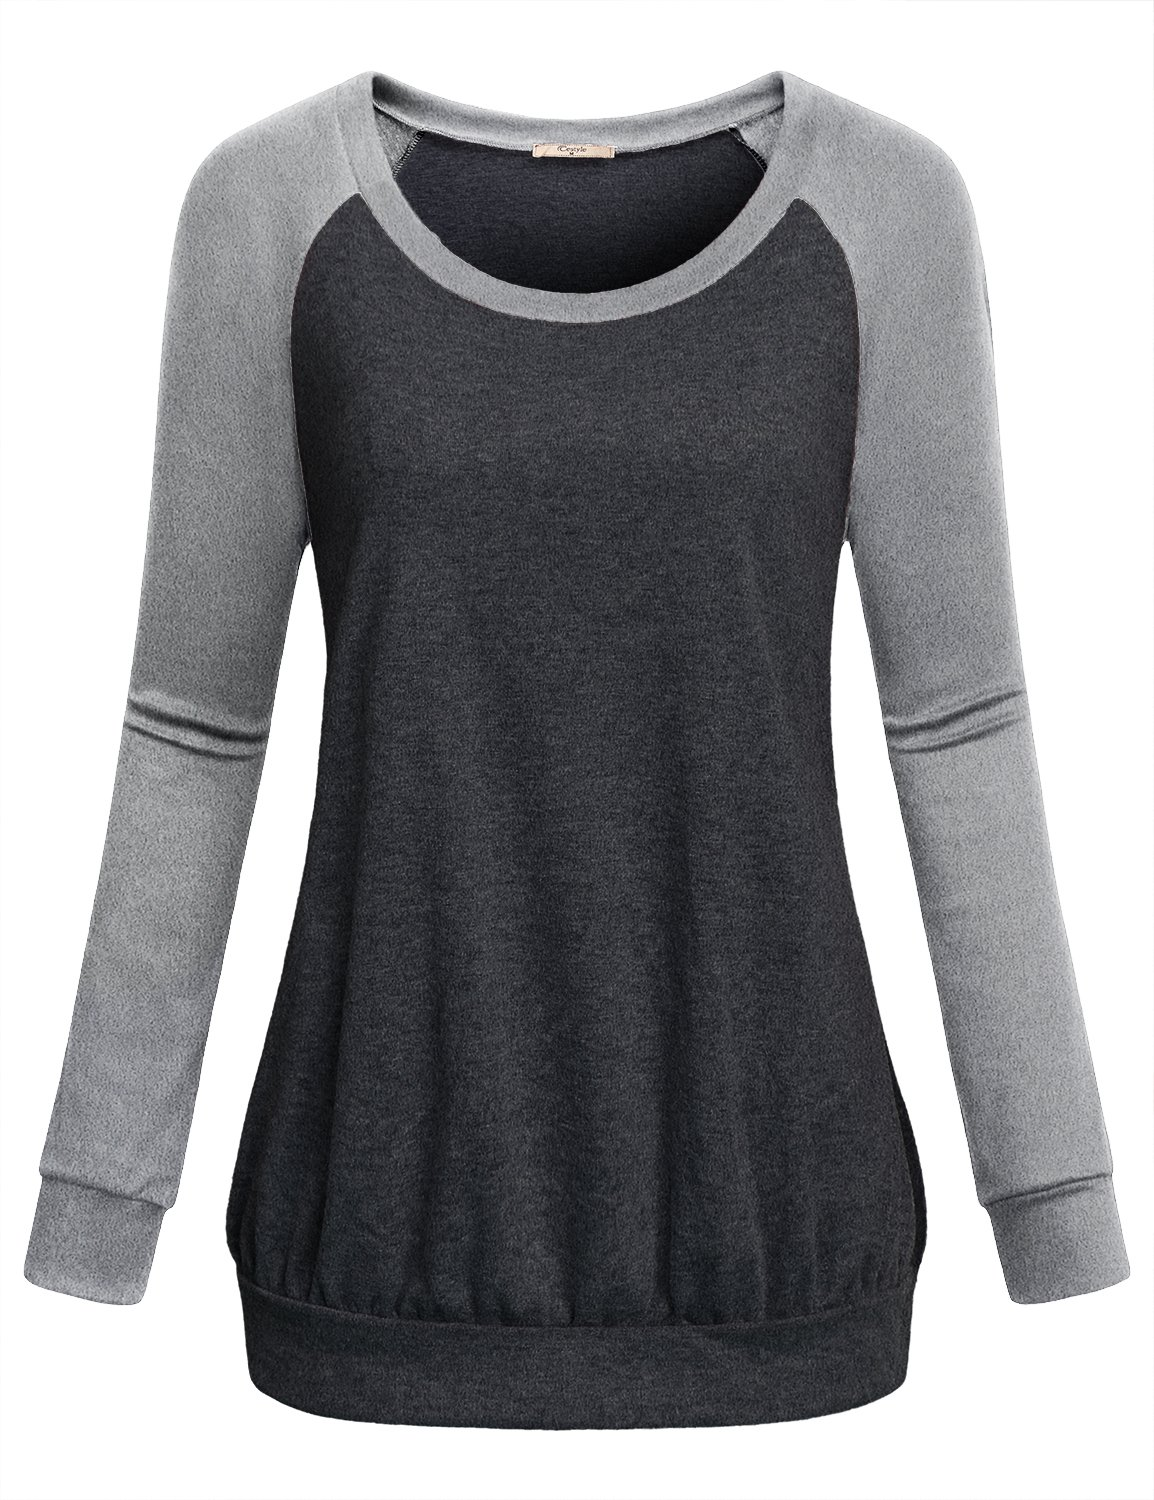 Cestyle Active Shirts for Women, Womens Basic Raglan Long Sleeve Crew Neck Tunic Tees Teen Girls Color Block Banded Hem Pullover Sweater Sweatshirts to wear with Leggings Grey XX-Large